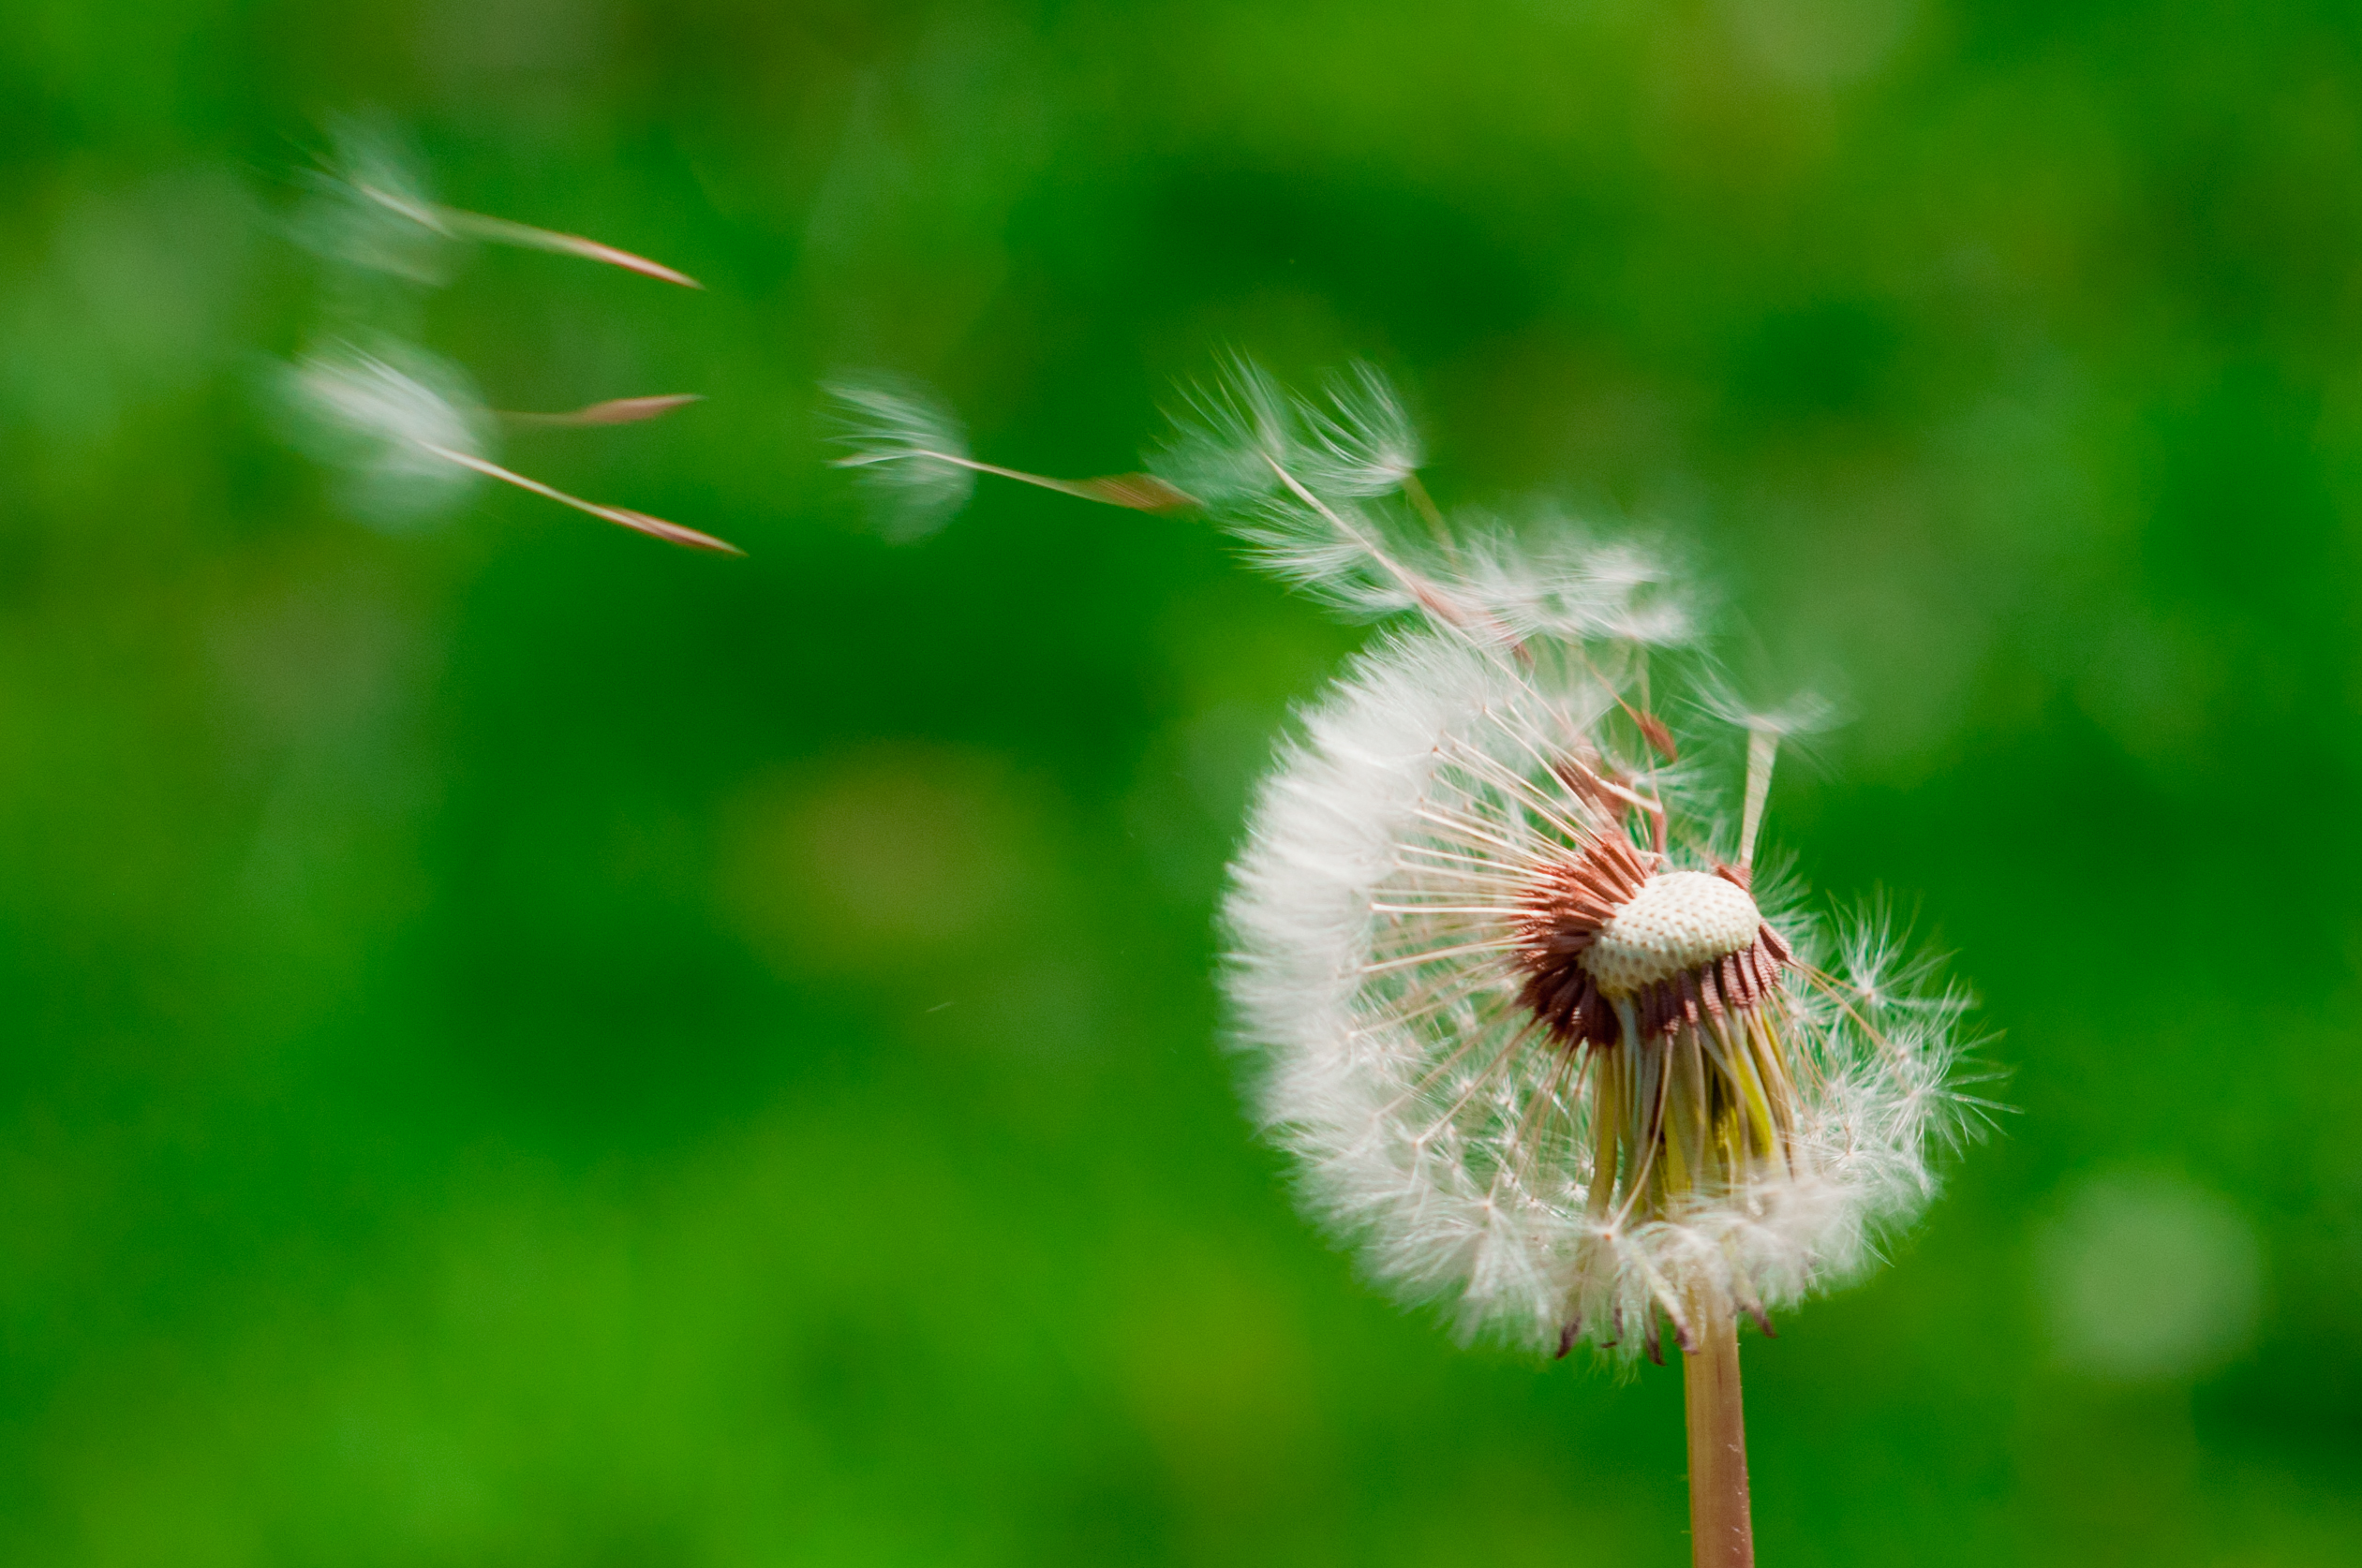 Blowing Dandelion Photography Top Pictures Gallery Online 2521x1674